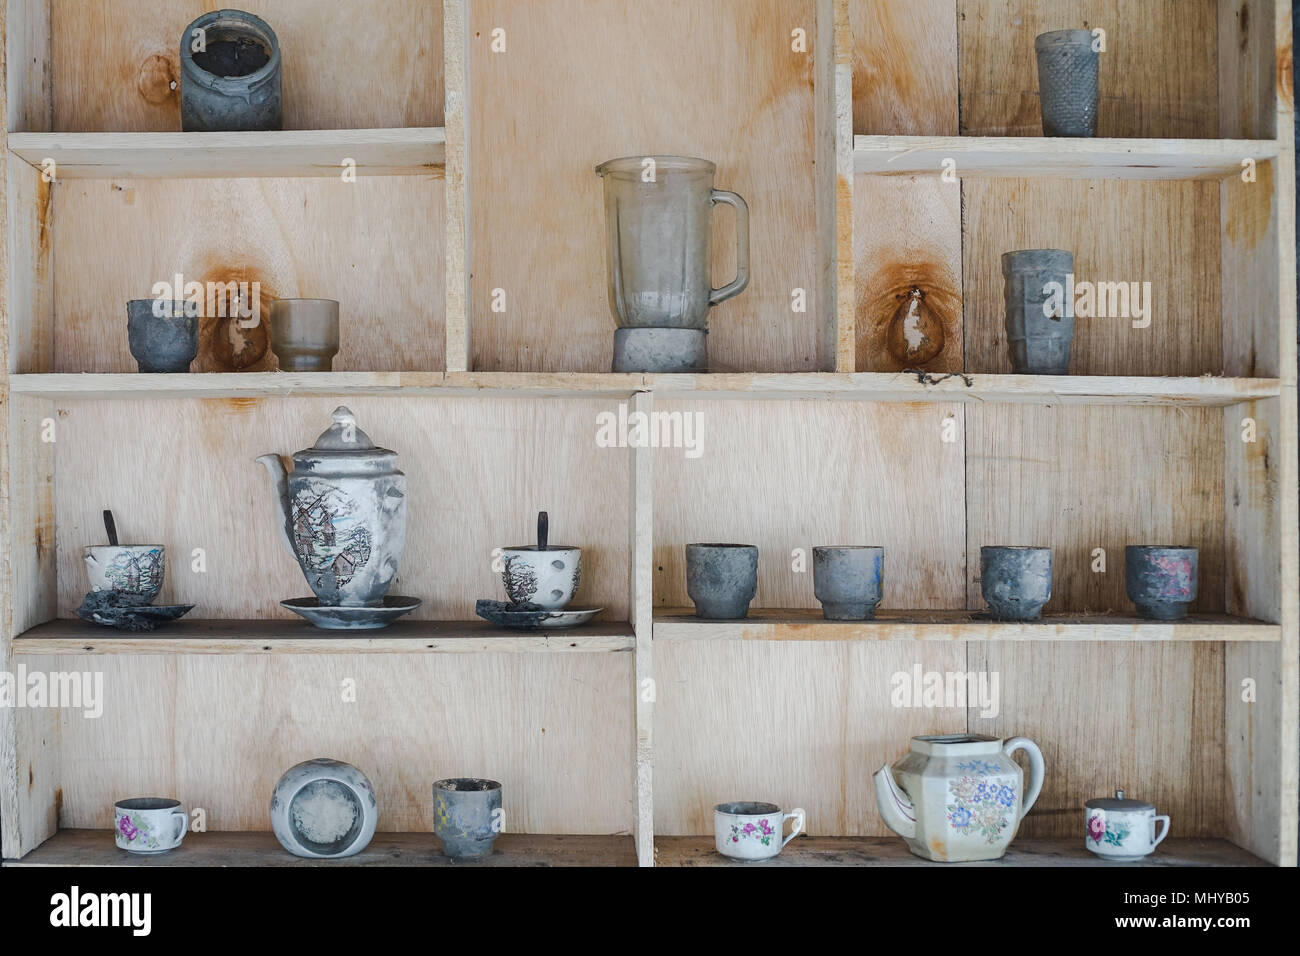 blender and cups on cabinet affected by Merapi mountain eruption - Stock Image